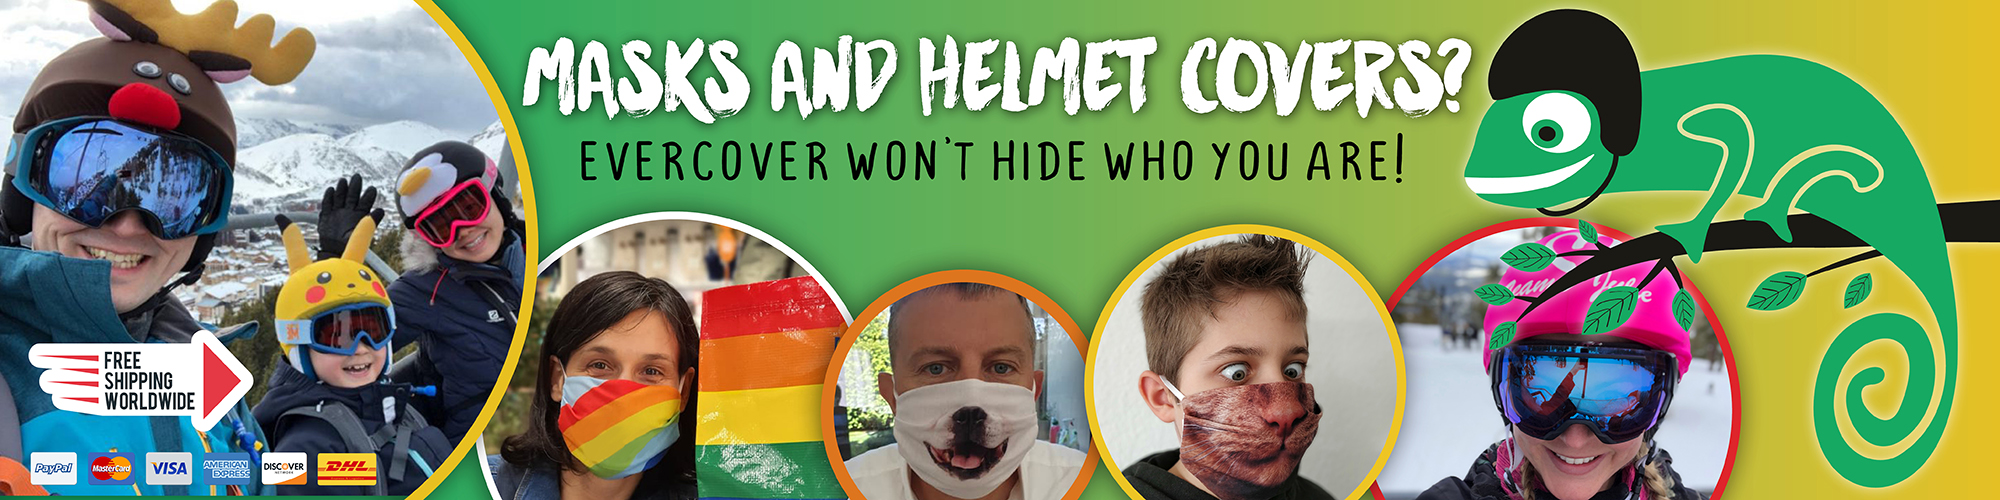 Evercover Funny Personalized And Custom Helmet Covers